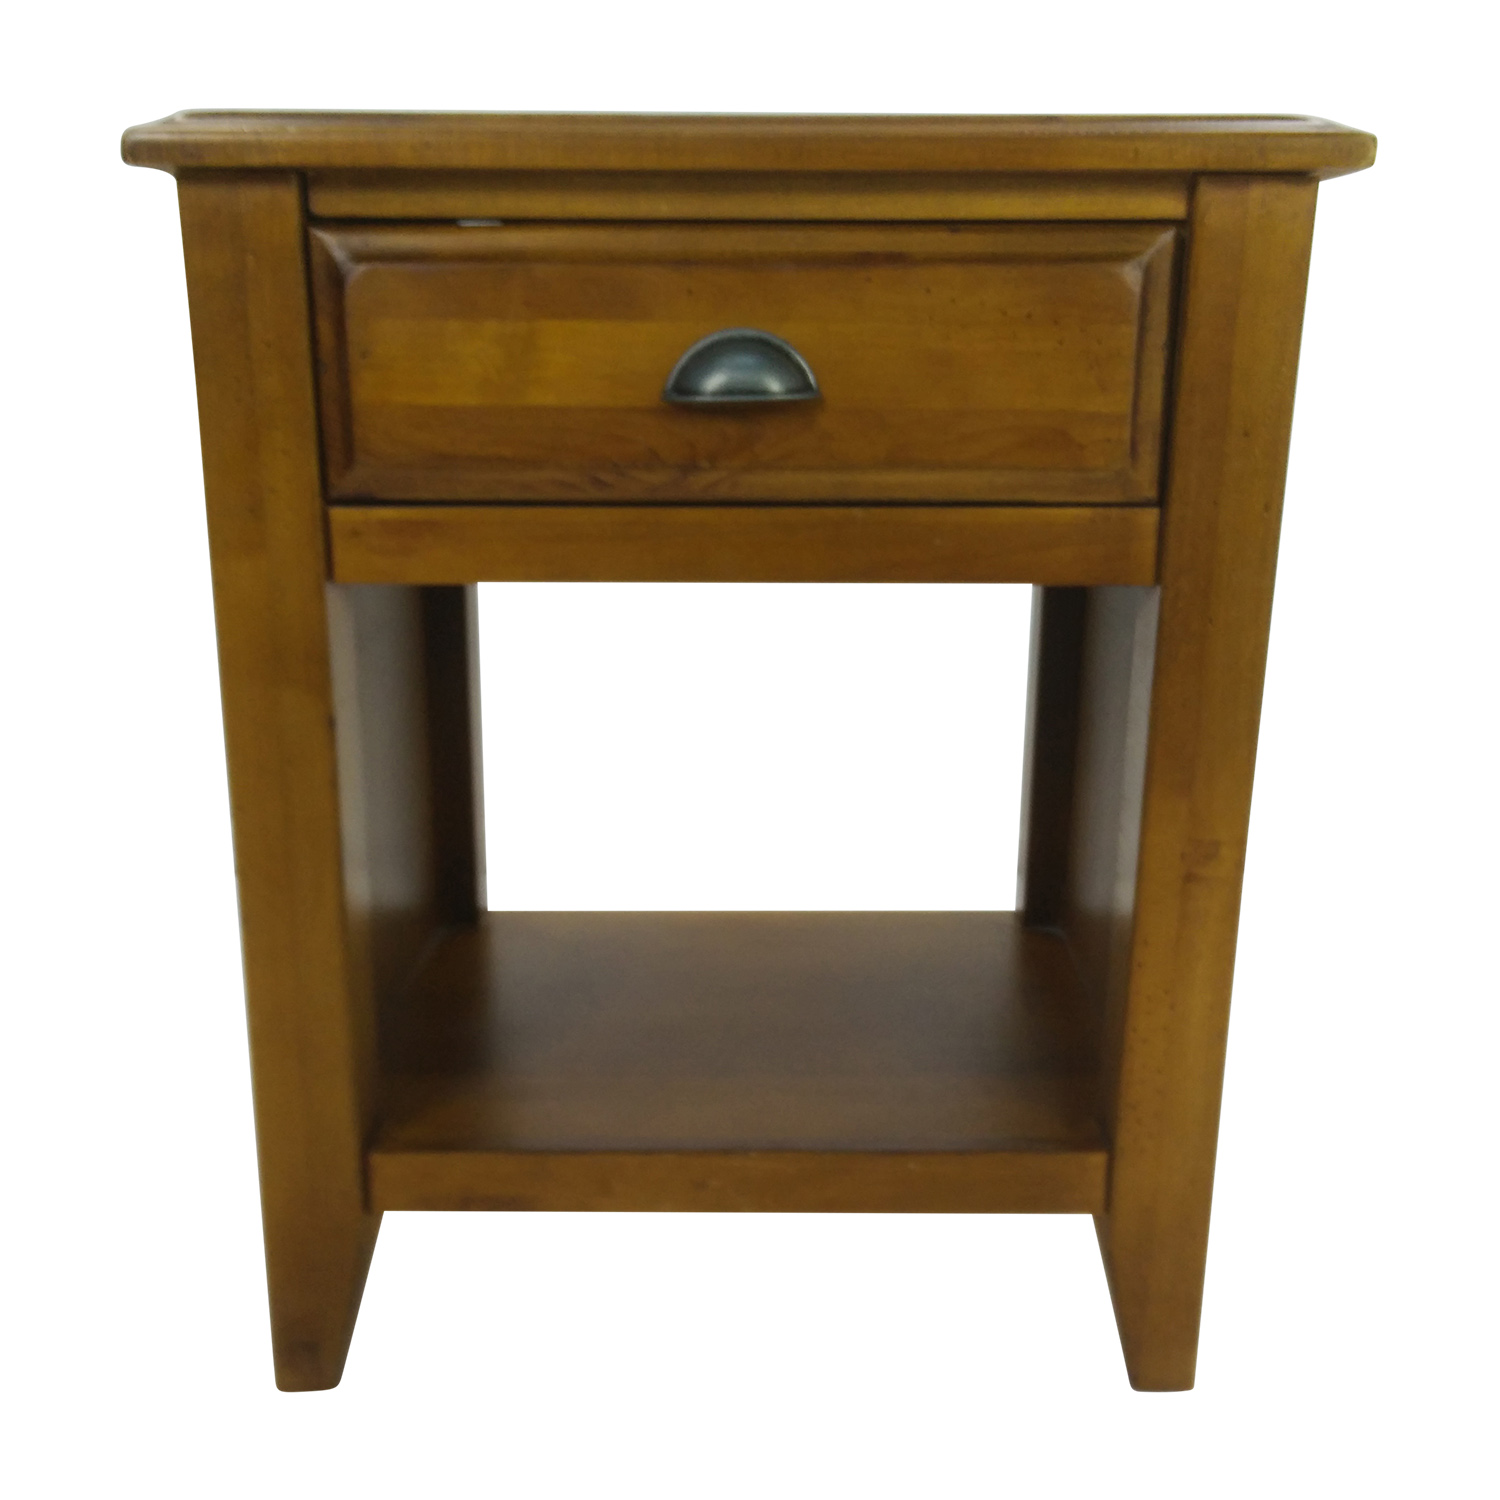 Pottery Barn Pottery Barn Nightstand nj